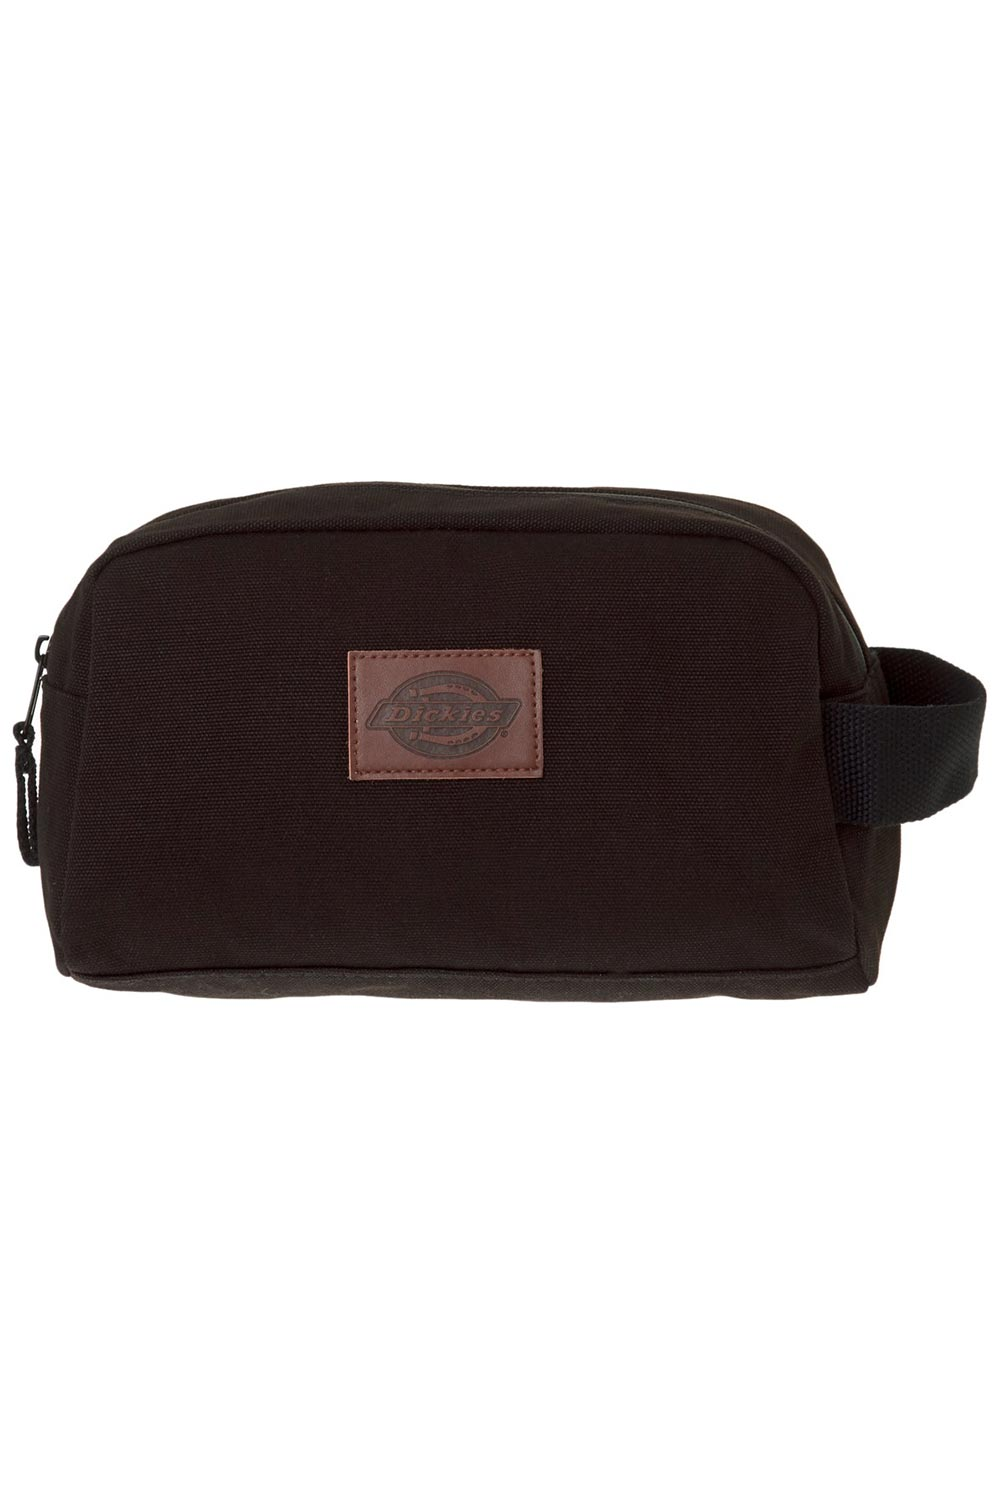 Dickies Black Sellersburg Wash Bag - Black